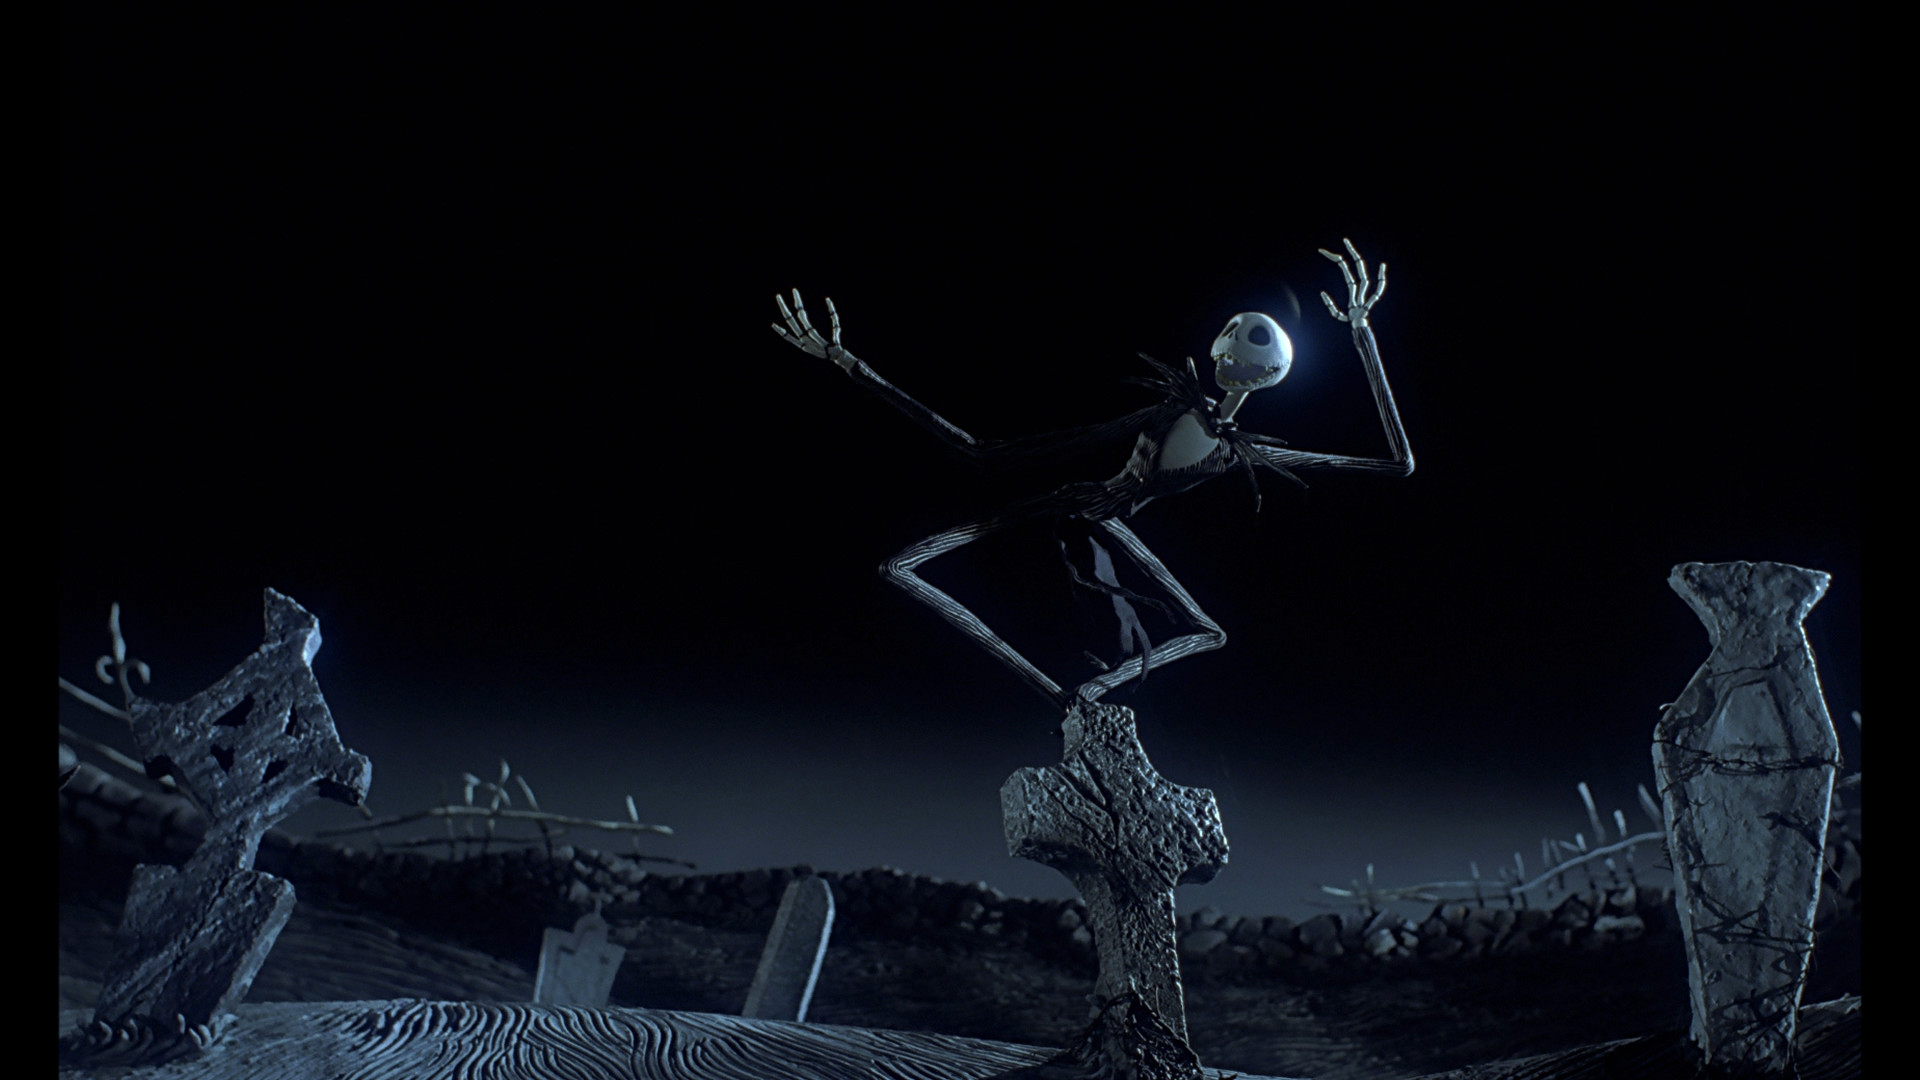 Jack Skellington Wallpaper HD (81+ images)